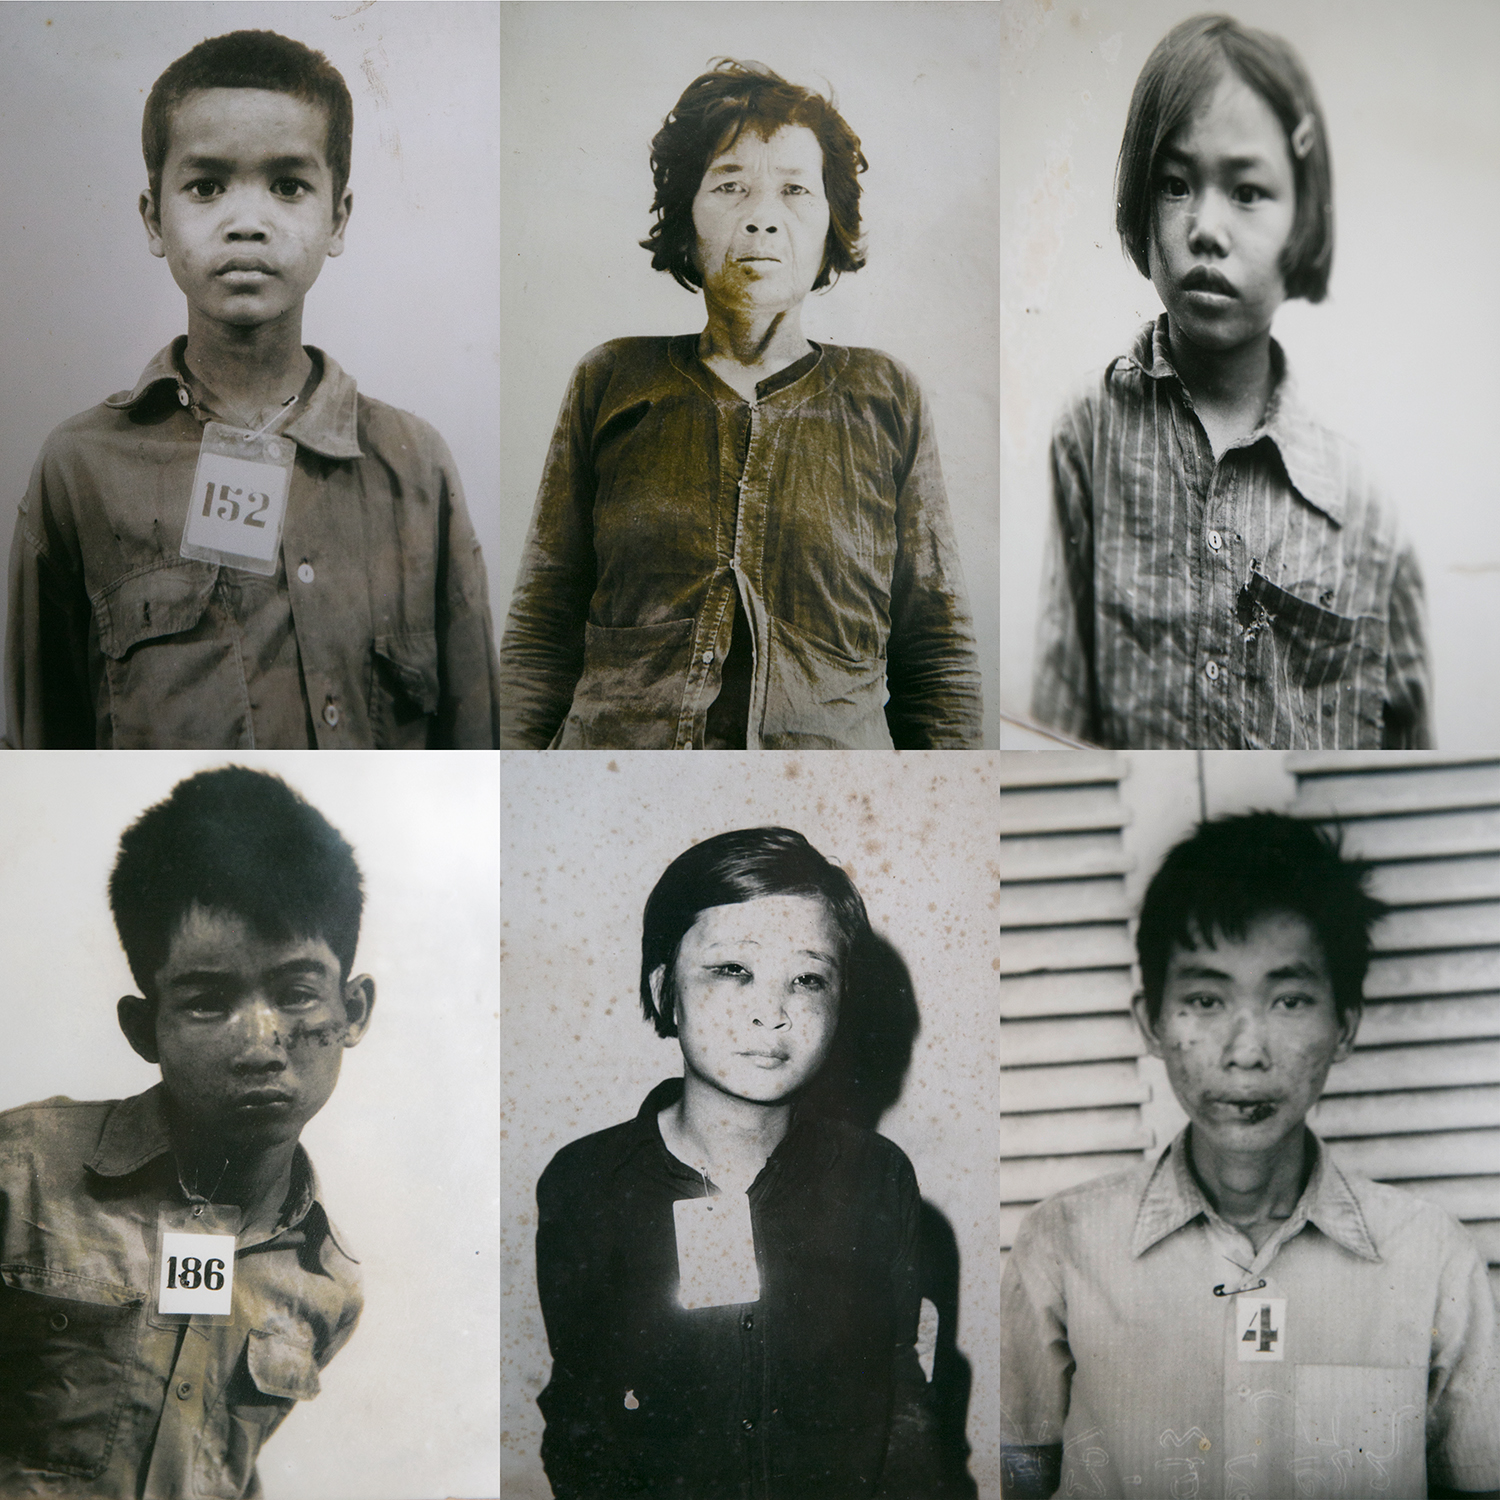 cambodians under pol pot Cambodians under pol pot cambodia, a small country just west of vietnam, gained independence after nearly 100 years of french rule they first faced the problem of communism during the vietnamese civil war.